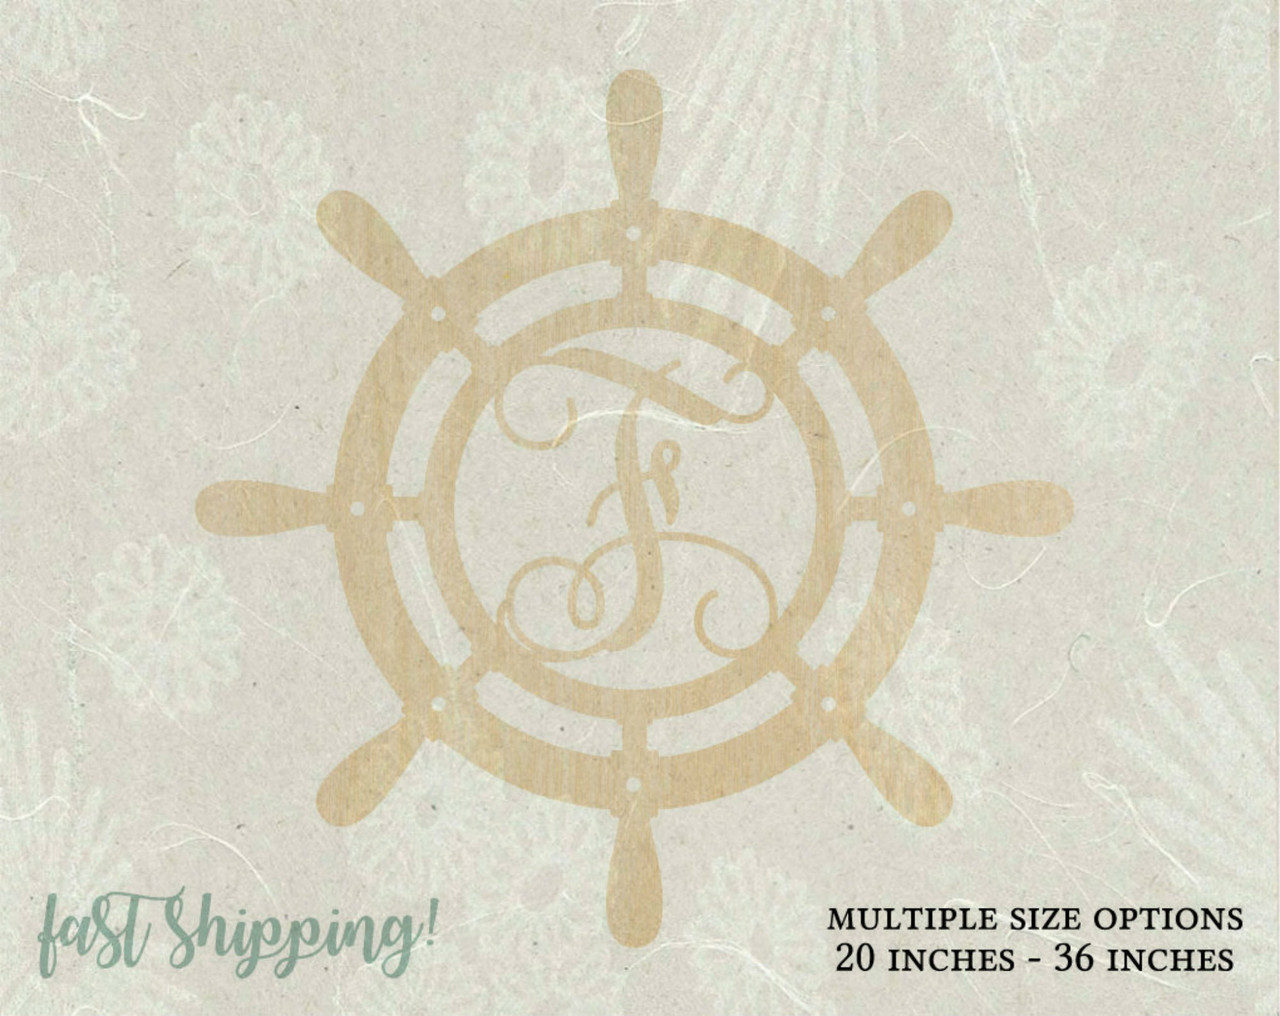 Personalized Wooden Ship Wheel Wall Decor